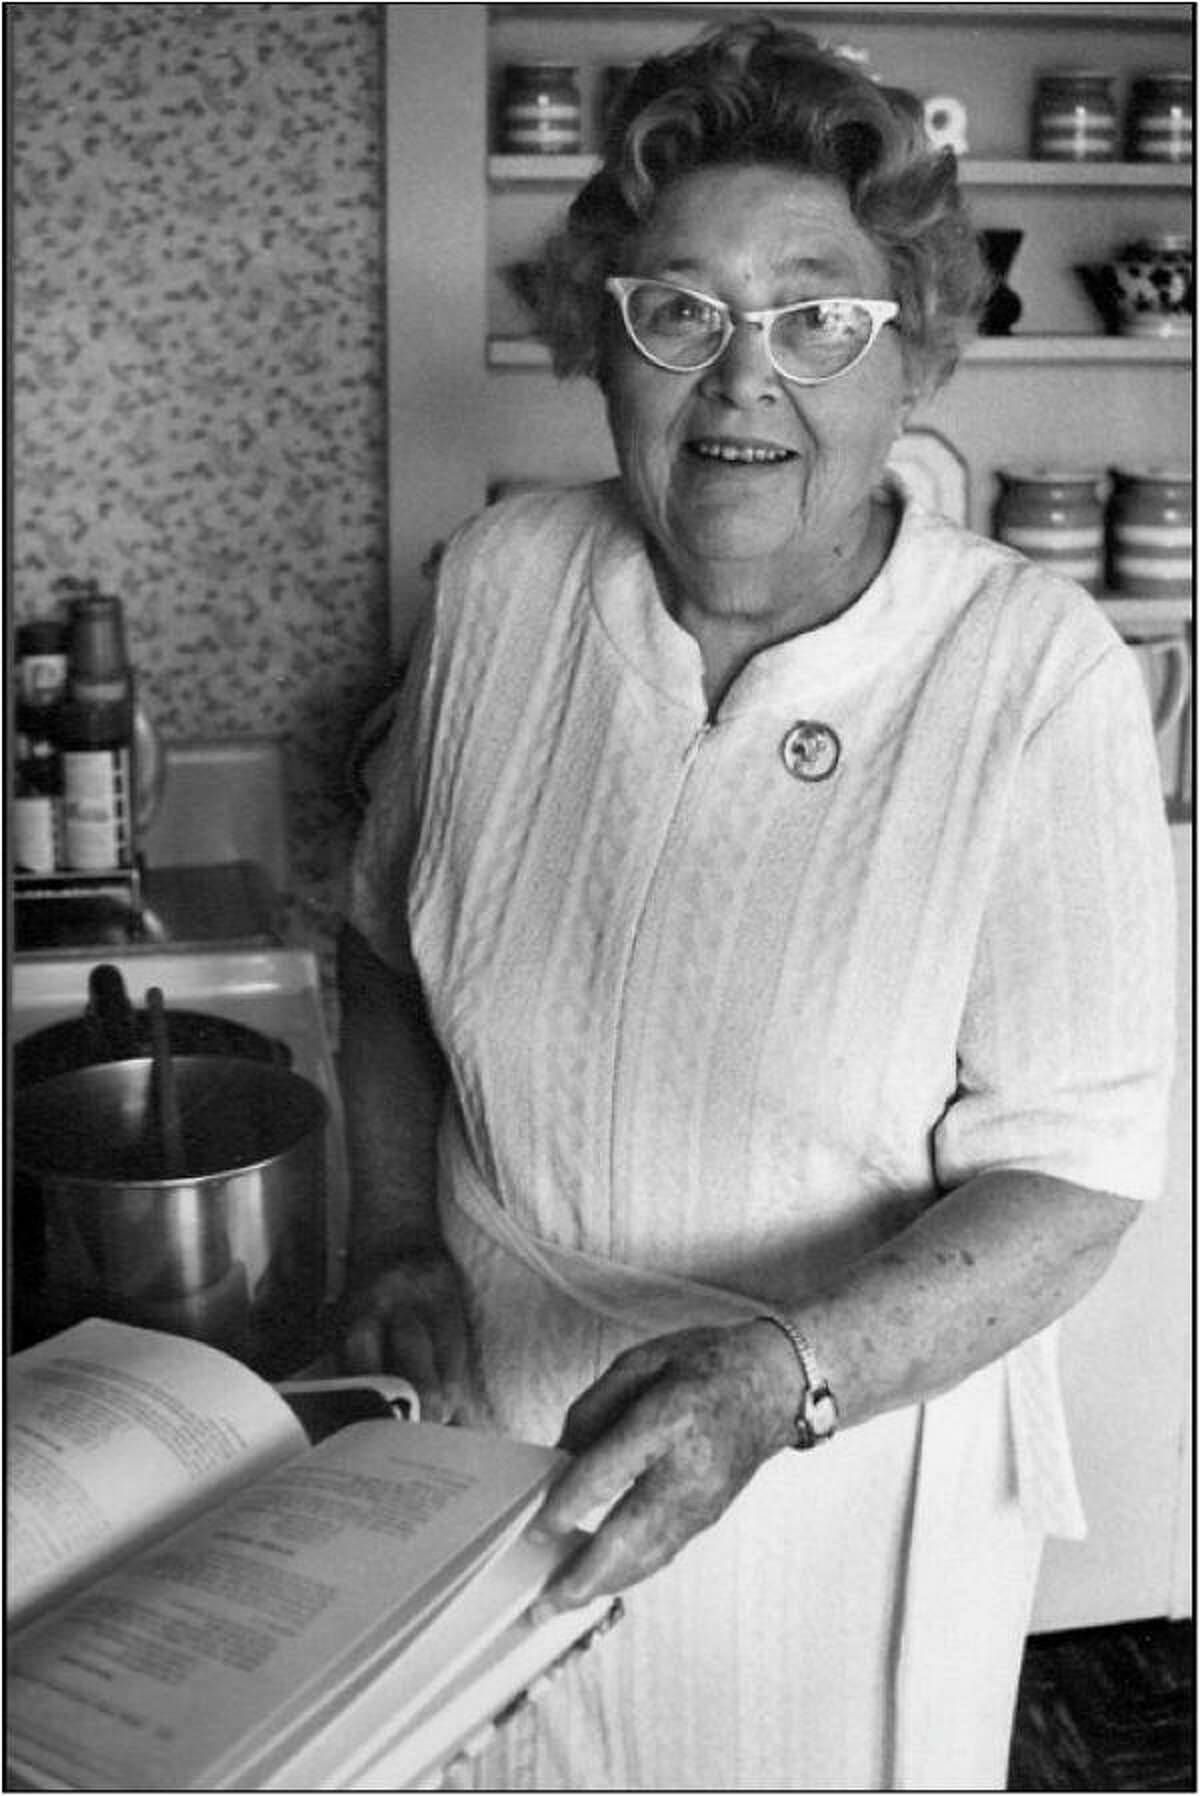 Gladys Taber, cooking in her kitchen at Stillmeadow Farm in Southbury, is seen in a photo which hangs in the office of Susan J. Turnley, editor of FOGT (Friends of Gladys Taber) Quarterly Journal.